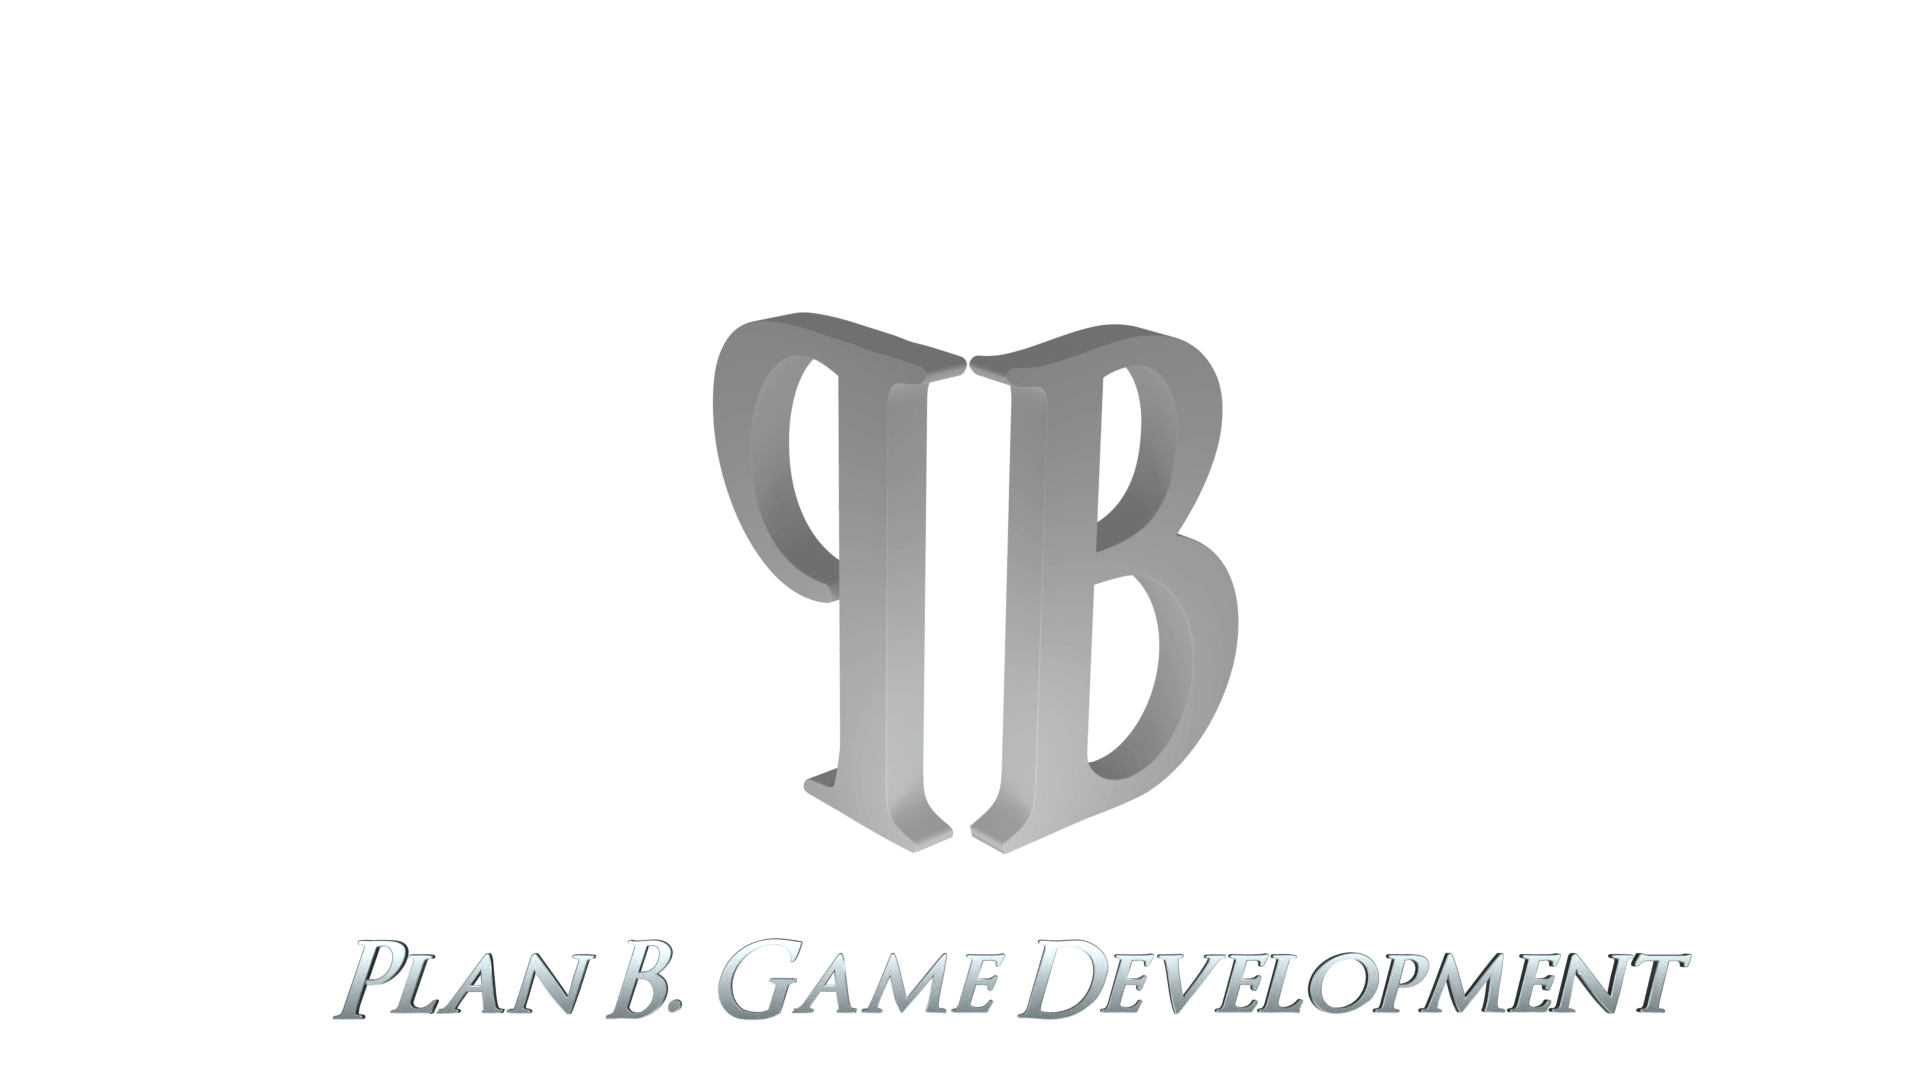 Plan B. Game Development